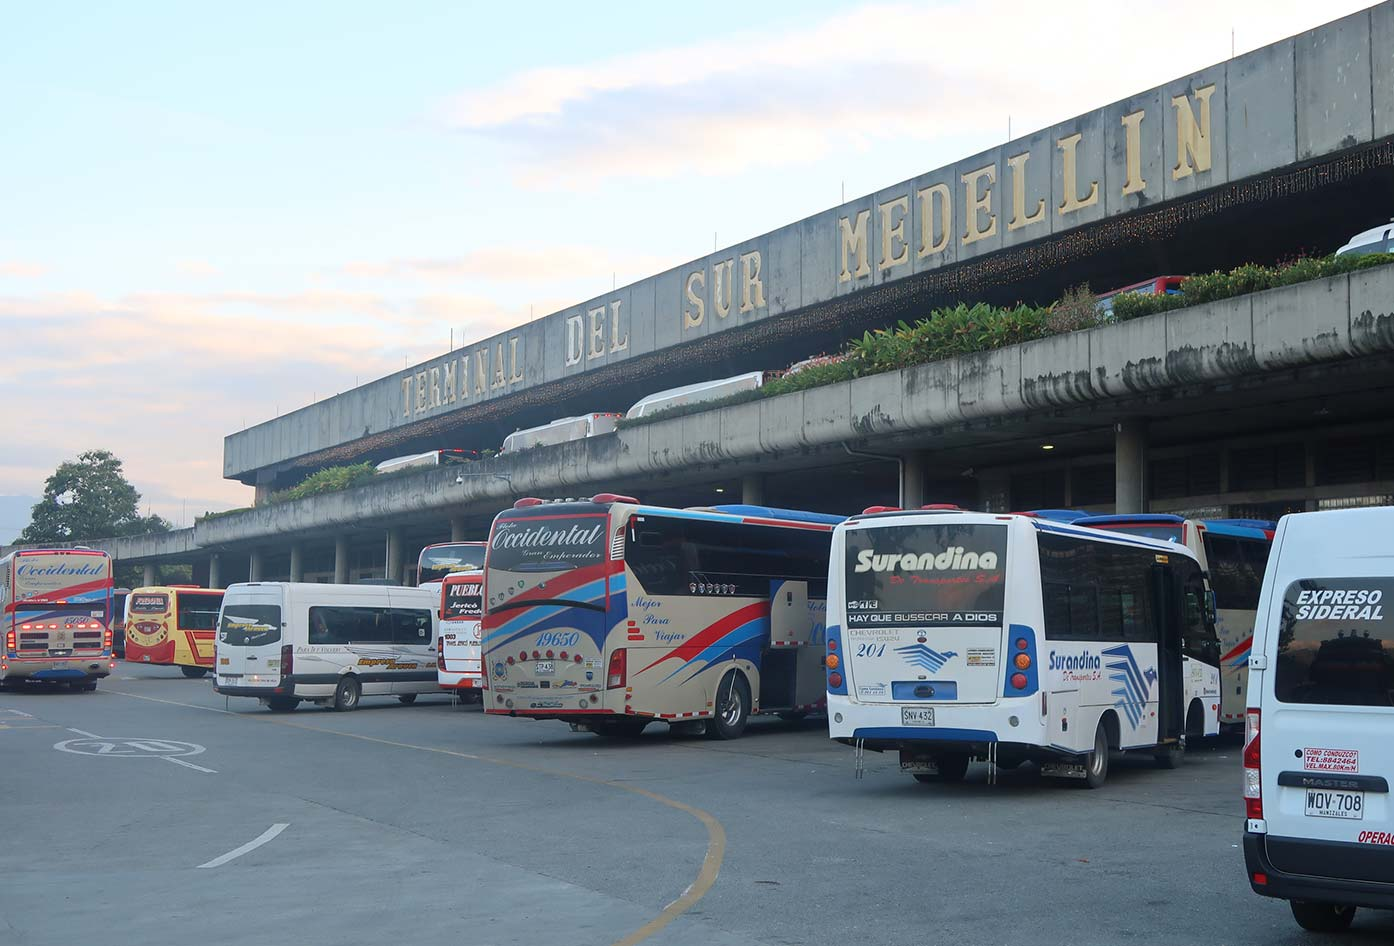 medellin south bus terminal to cali